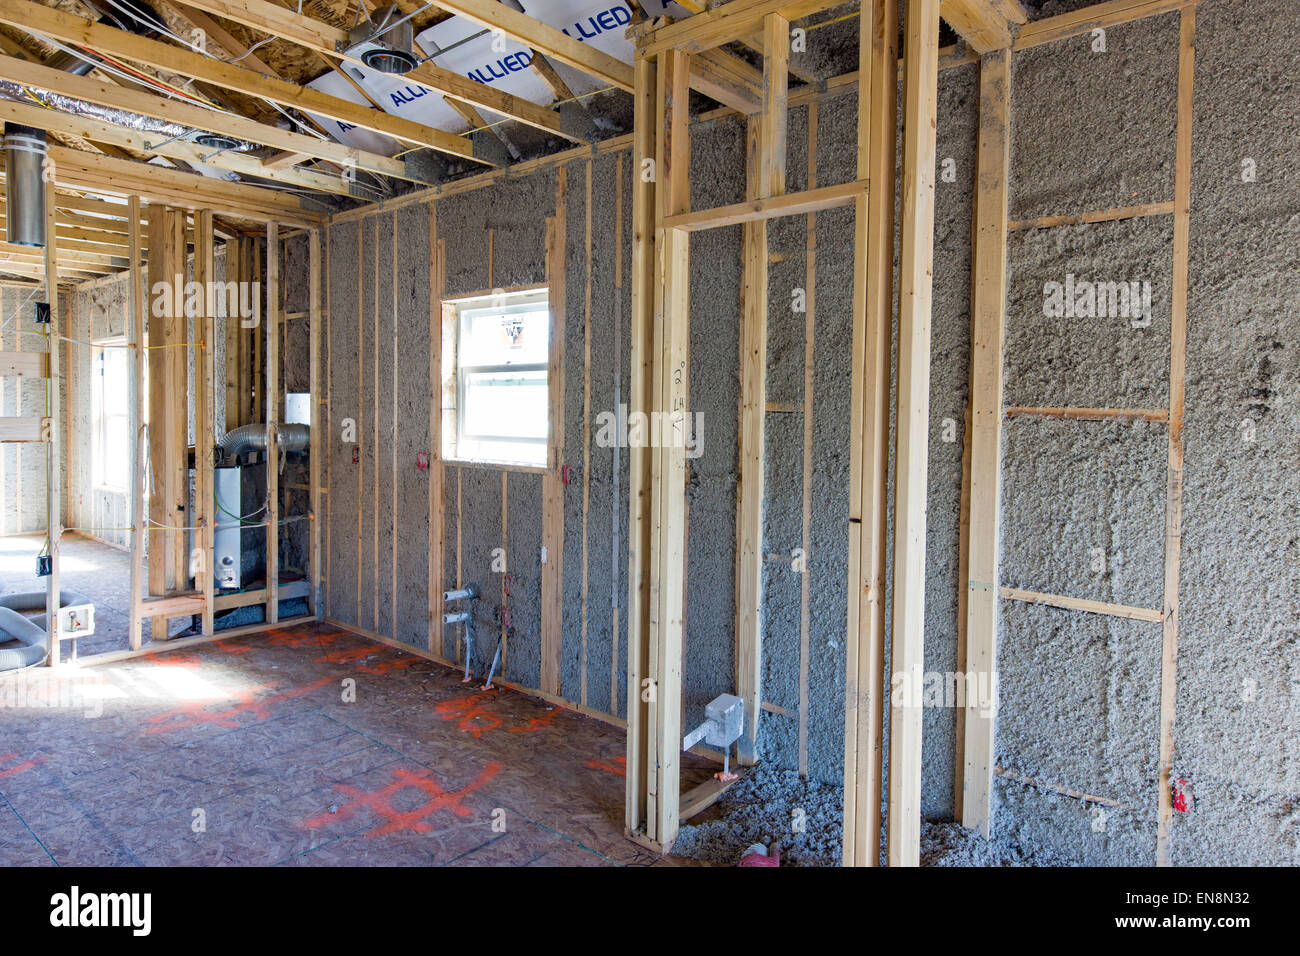 Exceptional Interior Frame Walls With Blown In Insulation, Construction Of A Craftsman  Style Residential Home In Colorado, USA